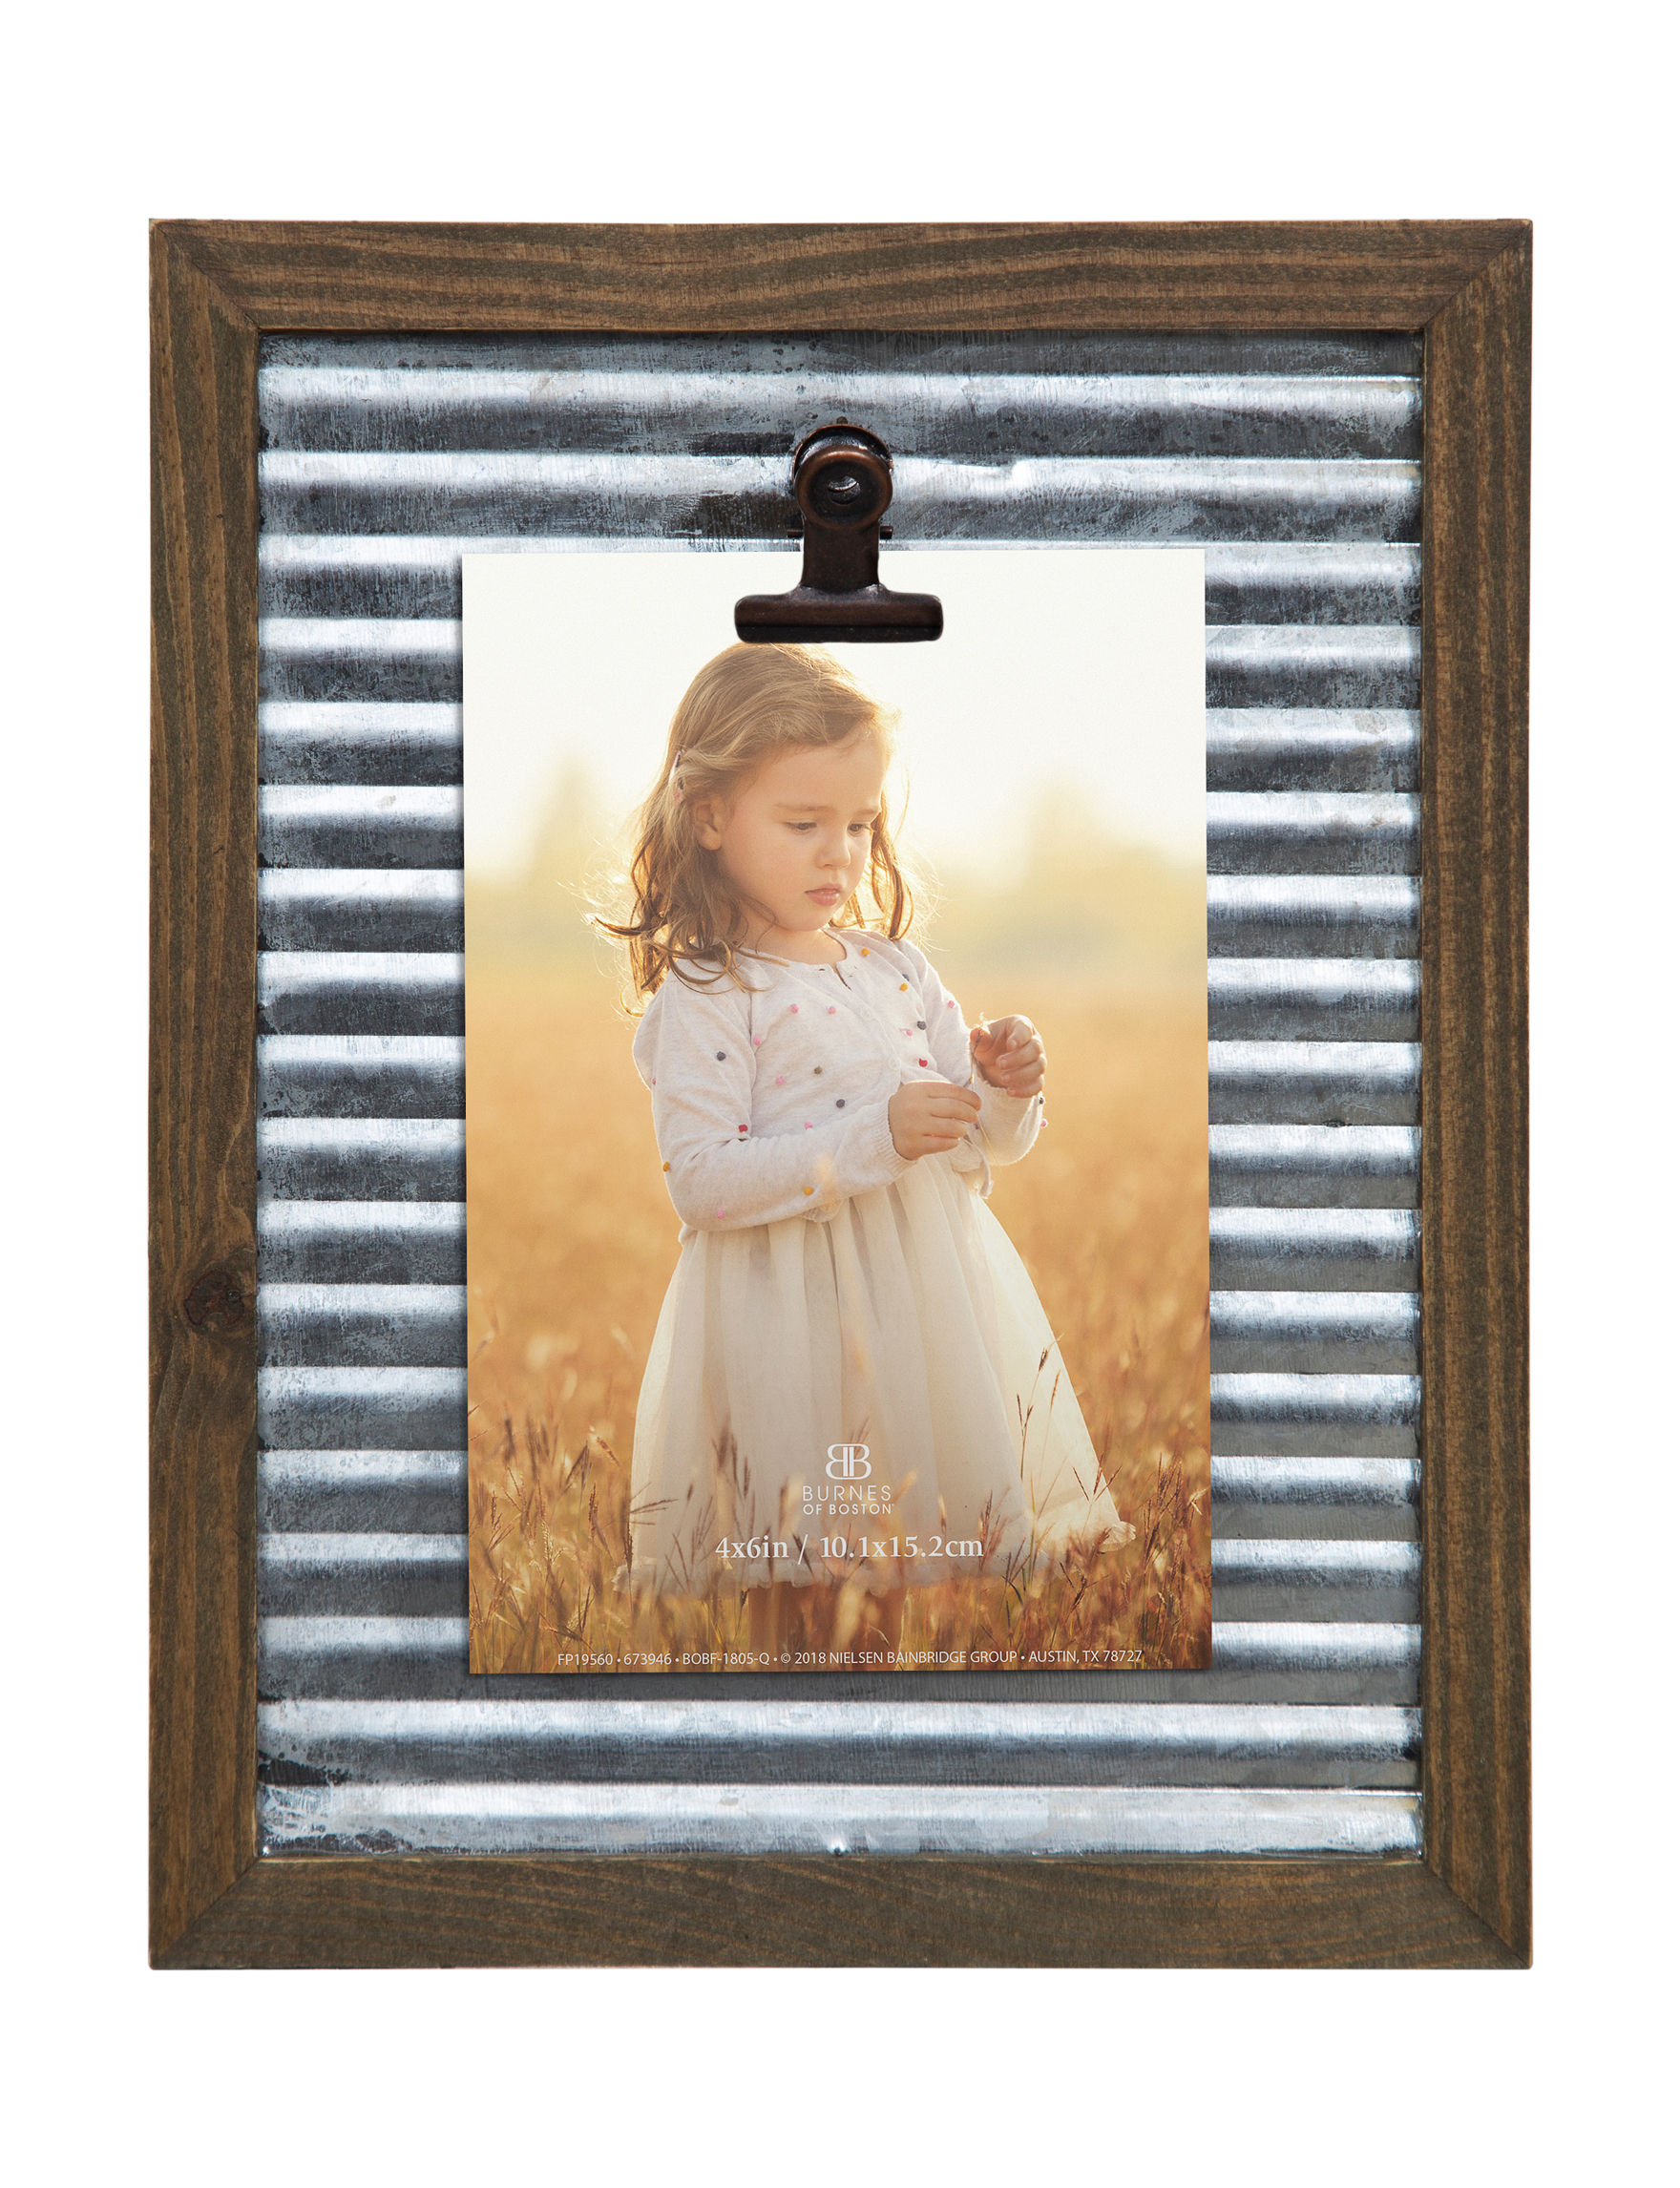 Nielsen Brown Decorative Objects Frames & Shadow Boxes